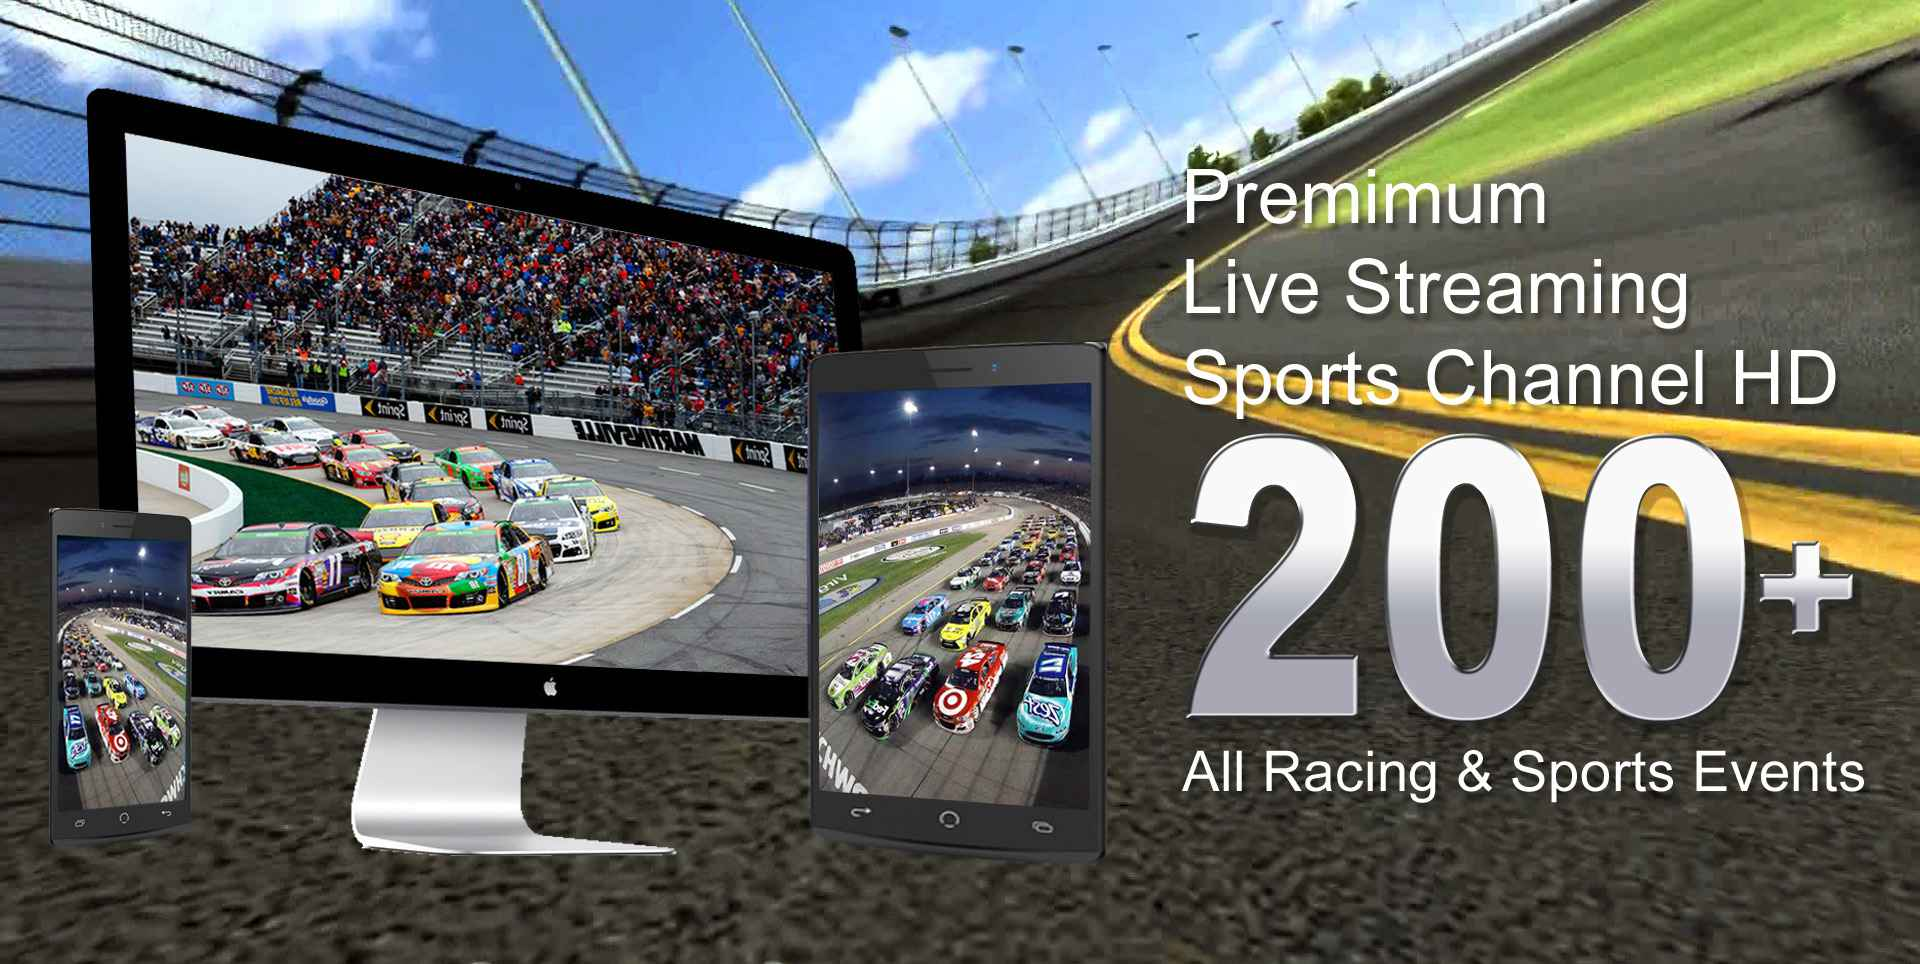 Nascar Race WinStar World Casino 400 Live Coverage